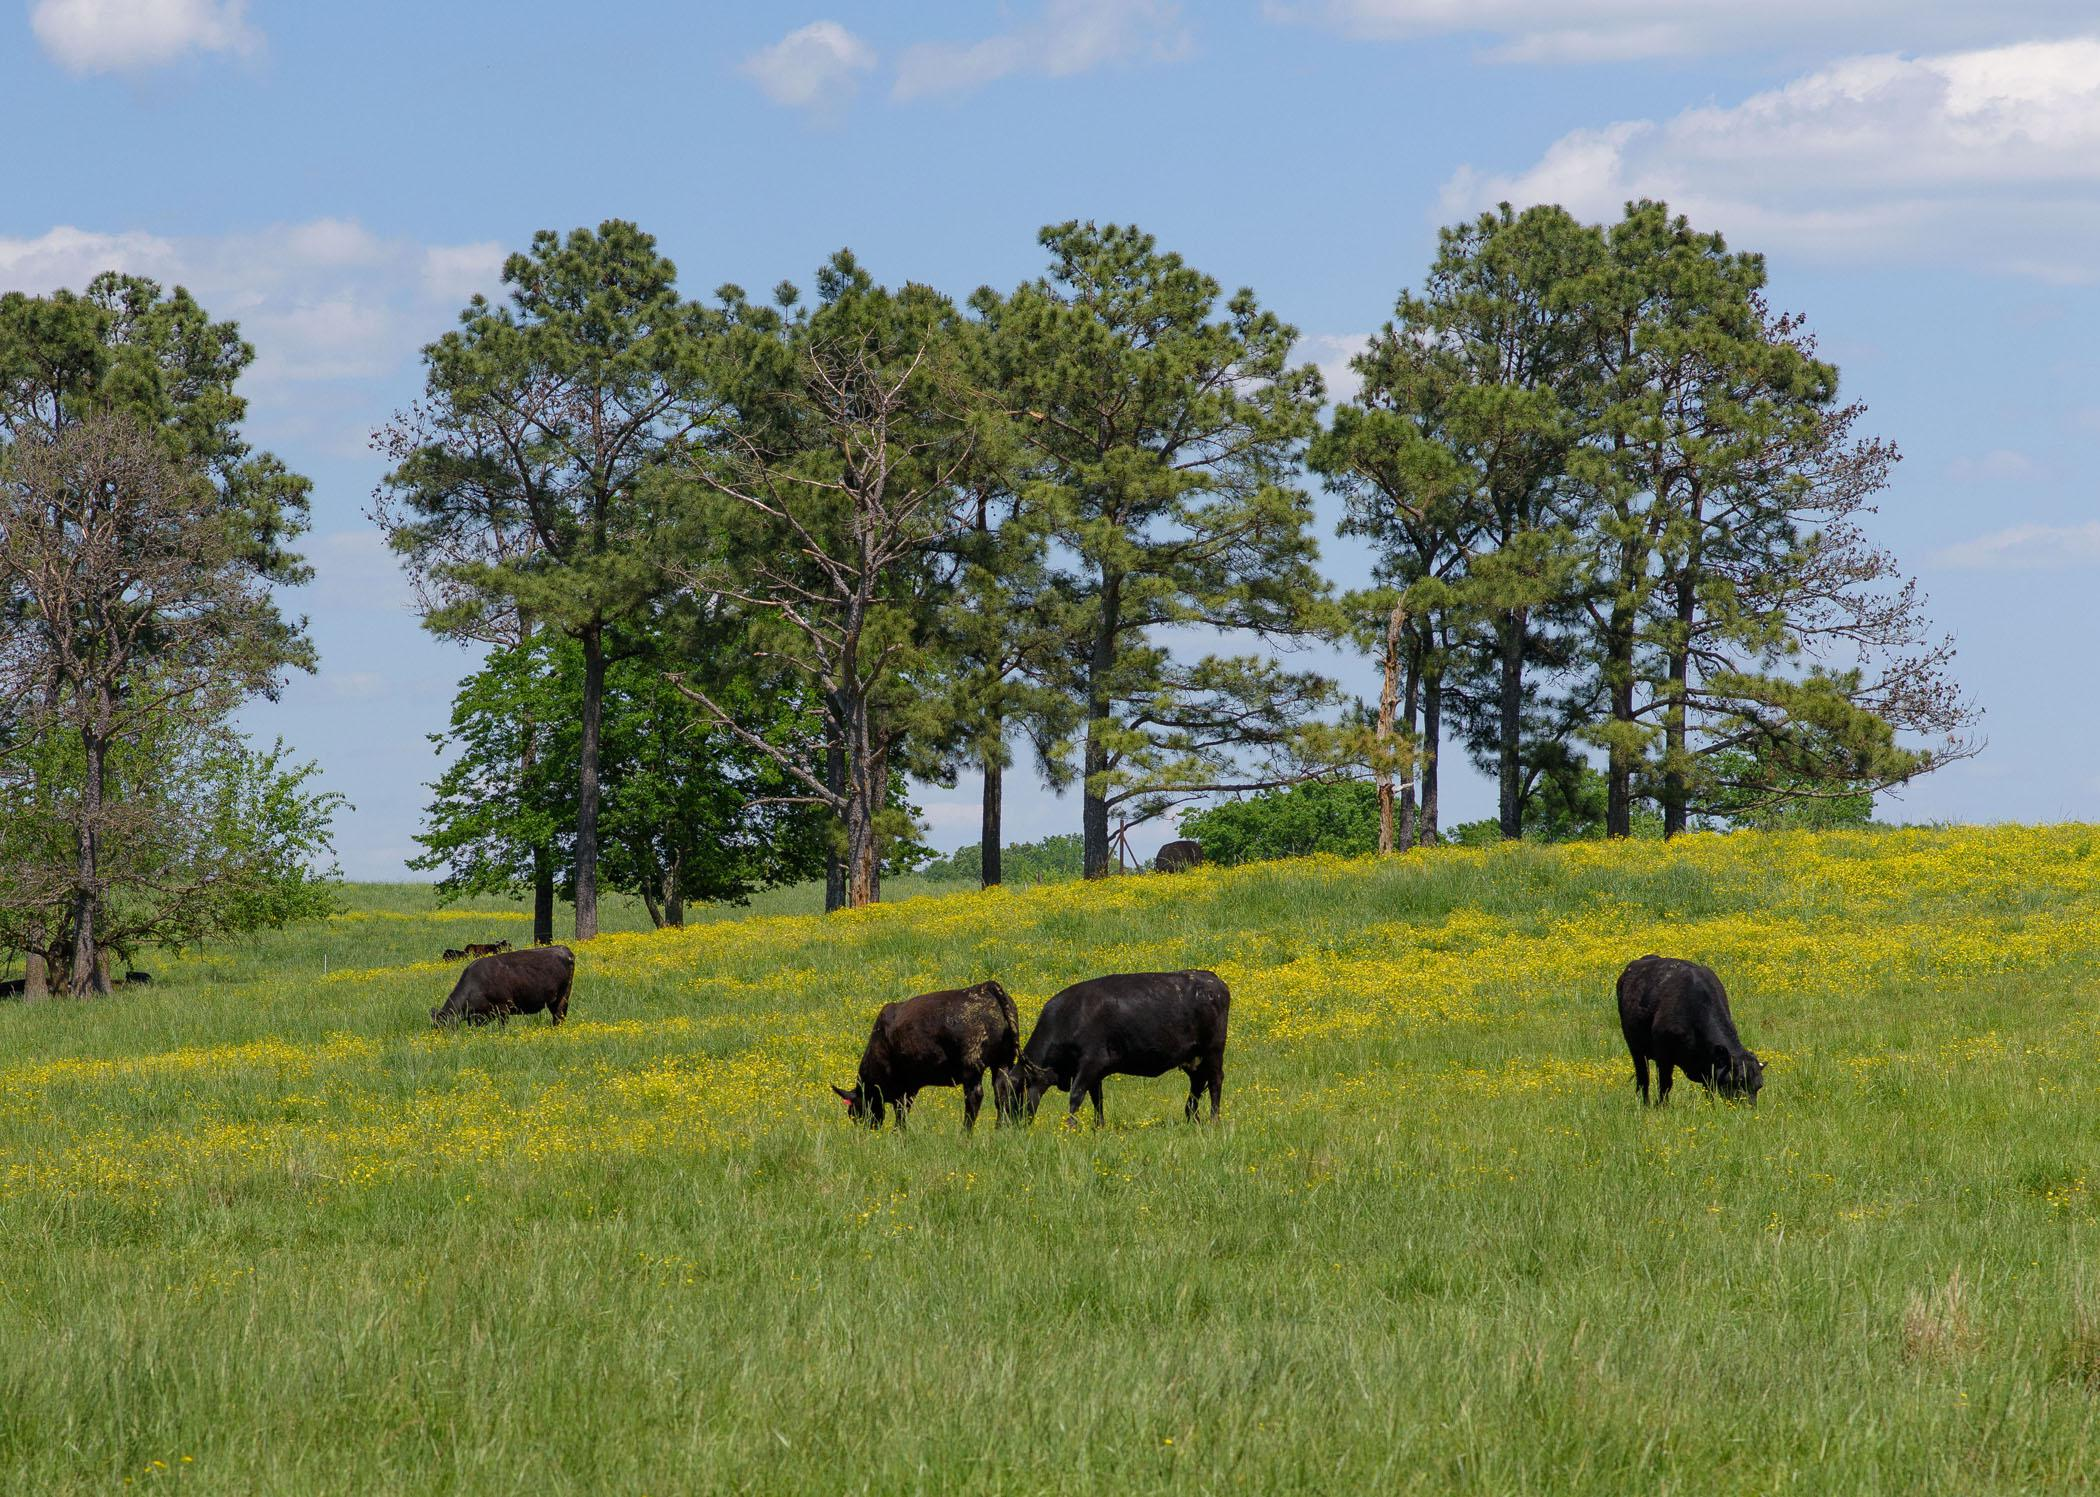 A field with four black cows.